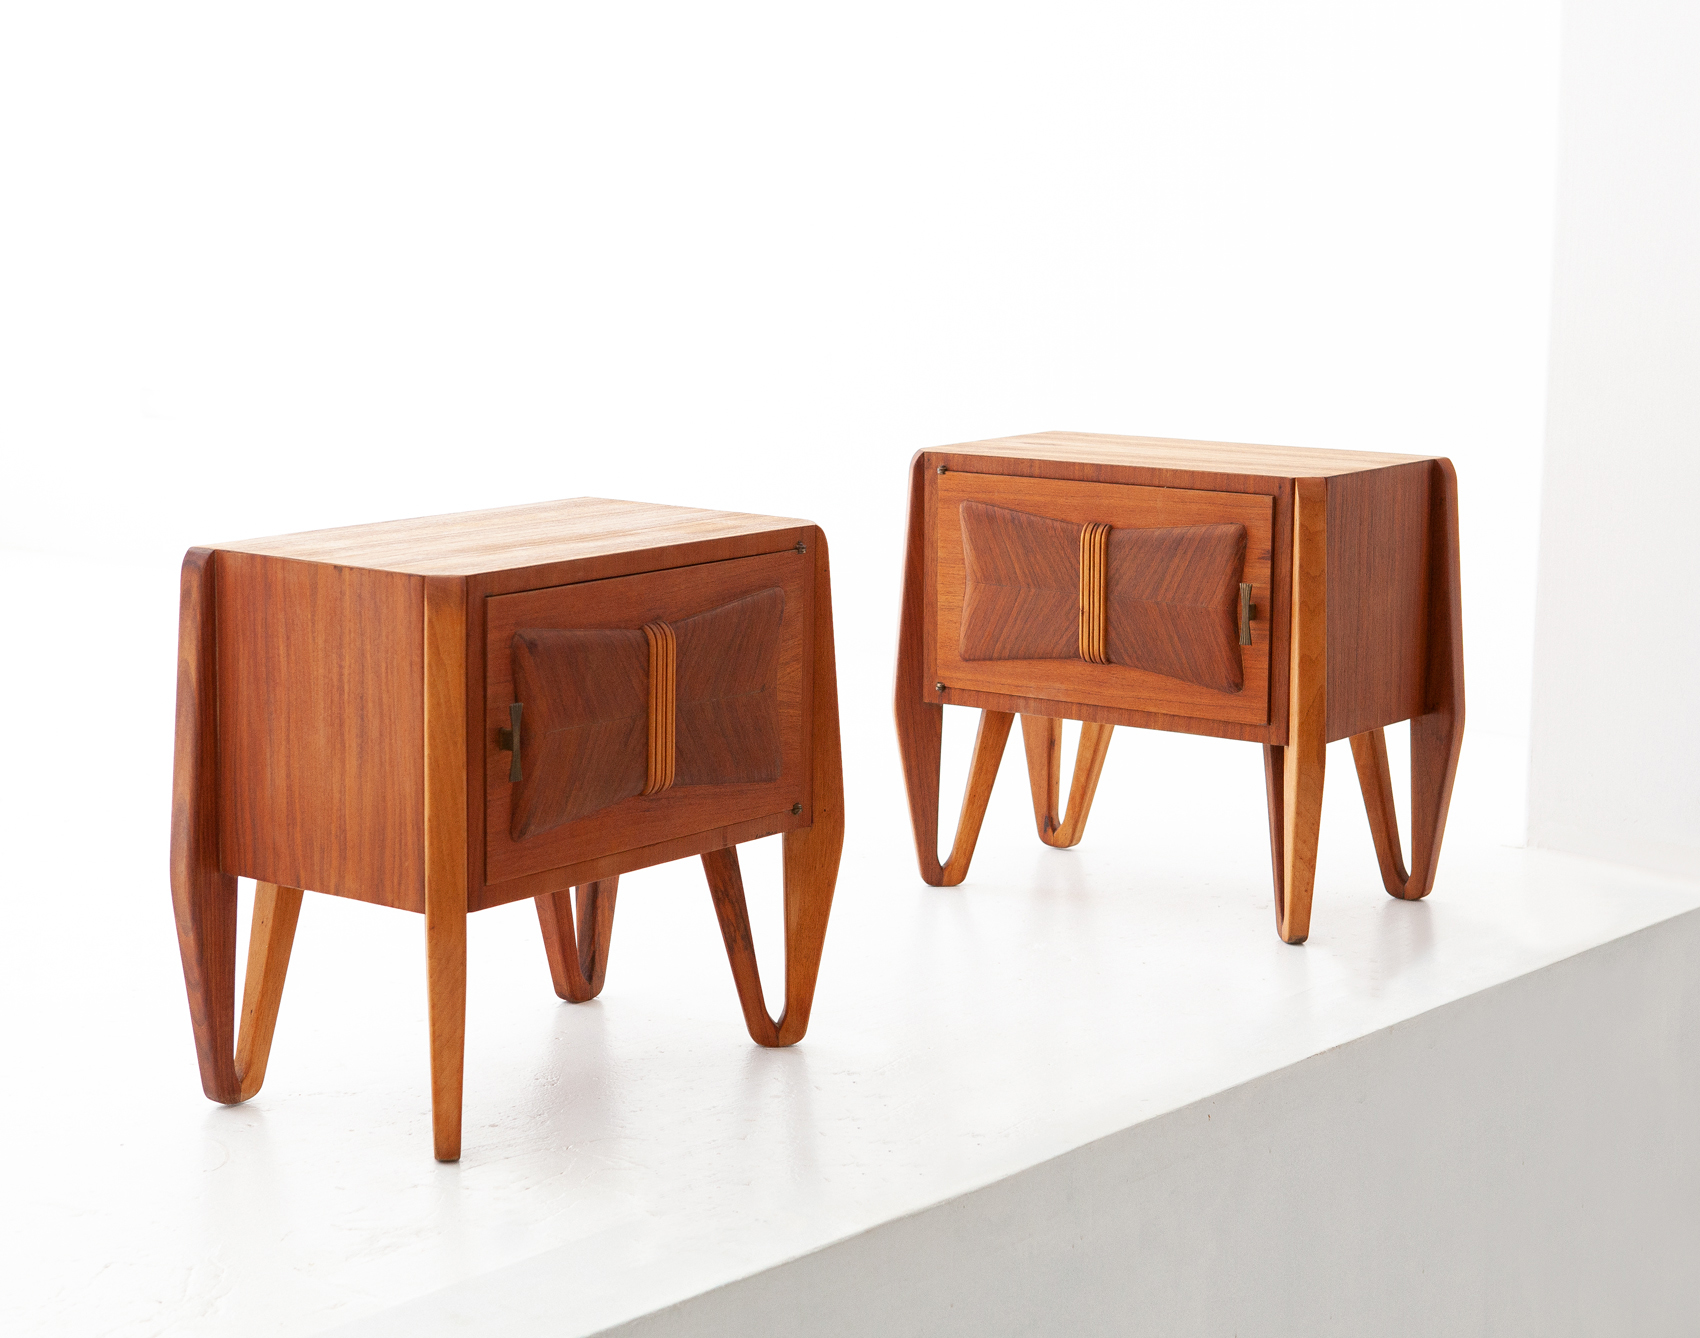 1950s-italian-teak-nightstands-7-bt79